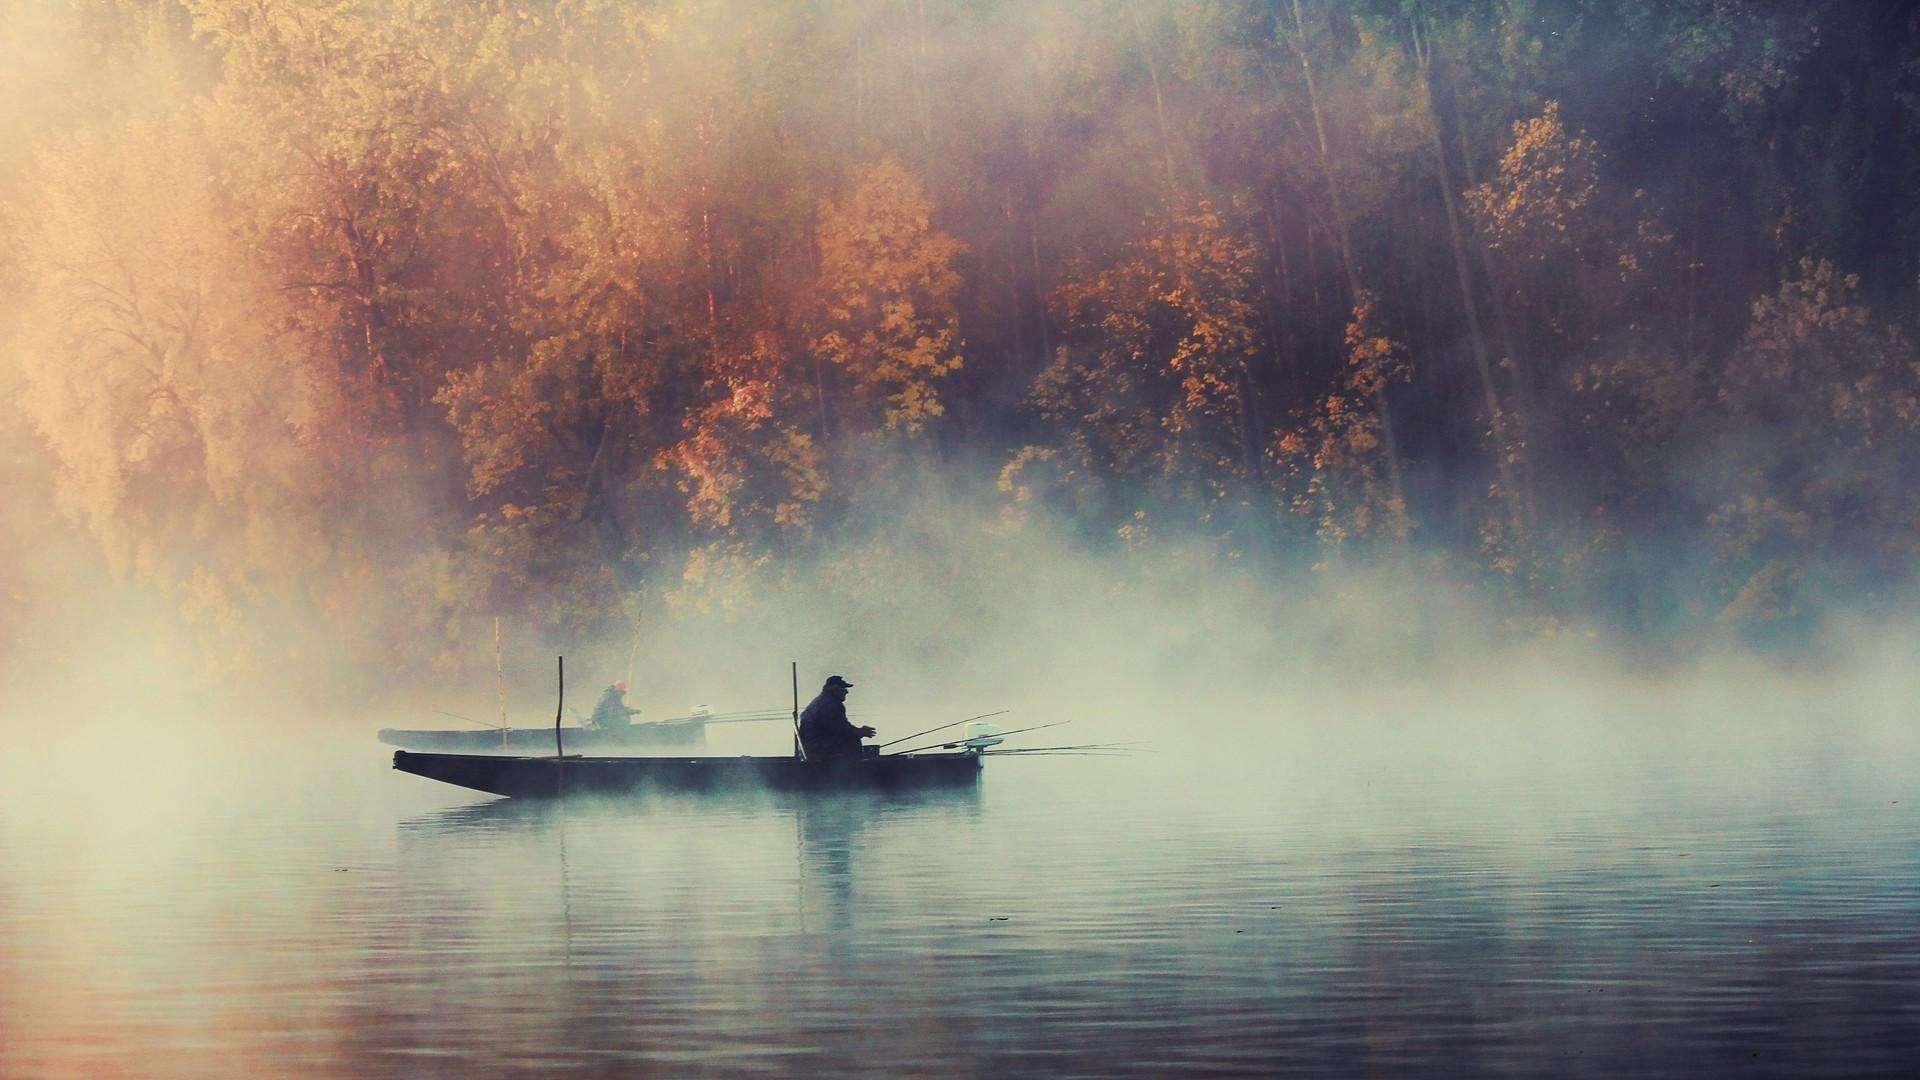 Fog mist boats lakes wallpaper | AllWallpaper.in #13605 | PC | en